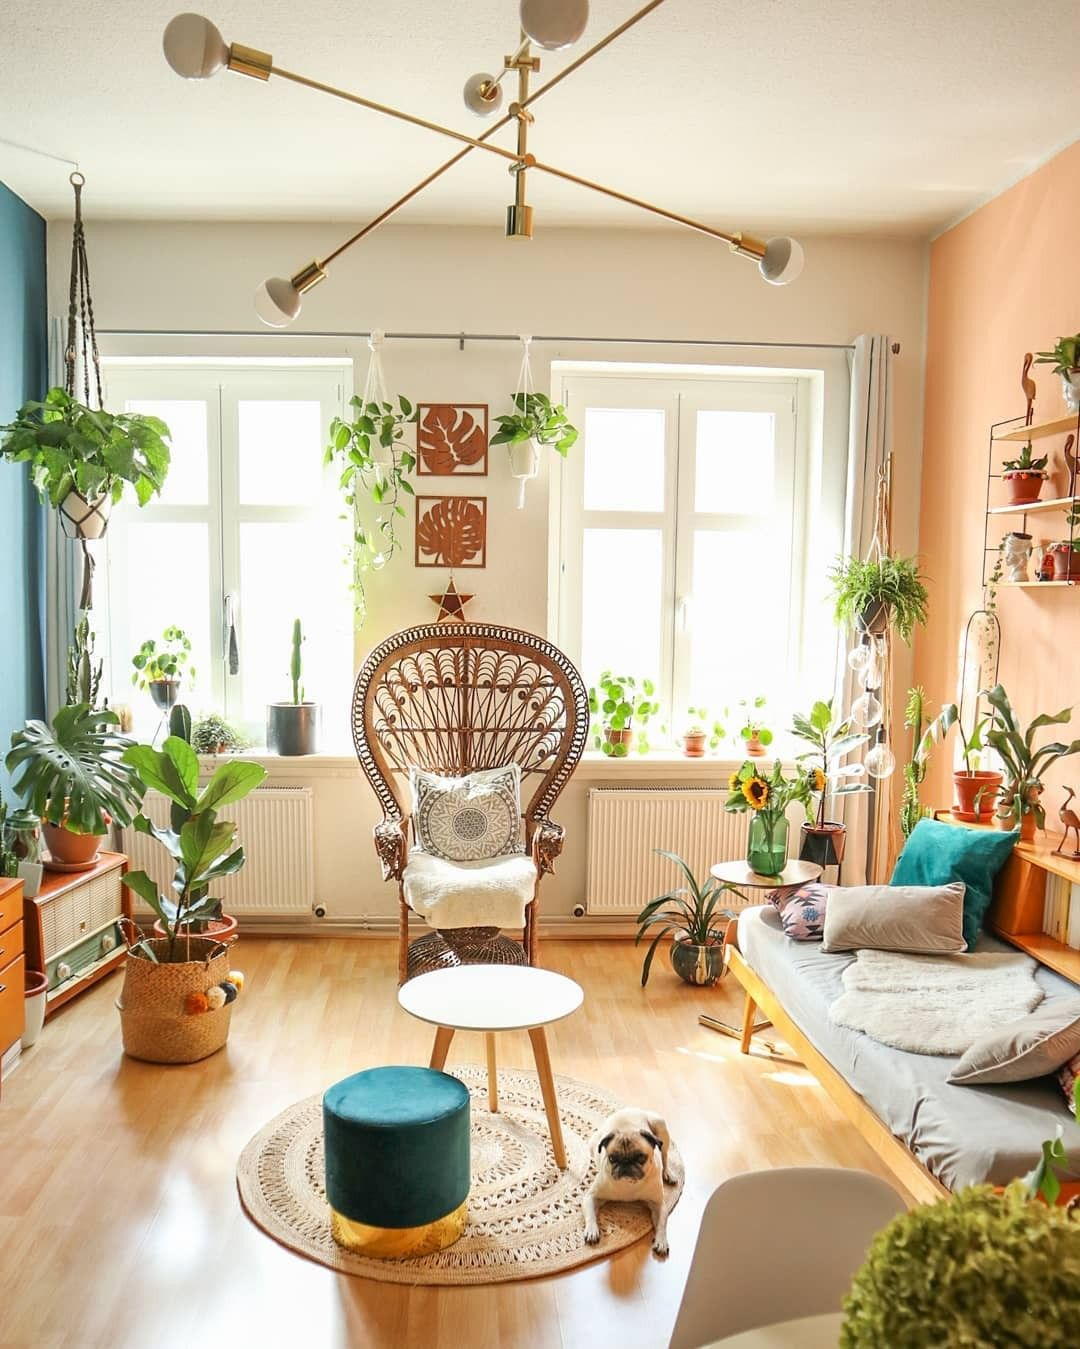 Aménager Un Salon Tout En Longueur boho chic home decor plans and ideas | home decor, home